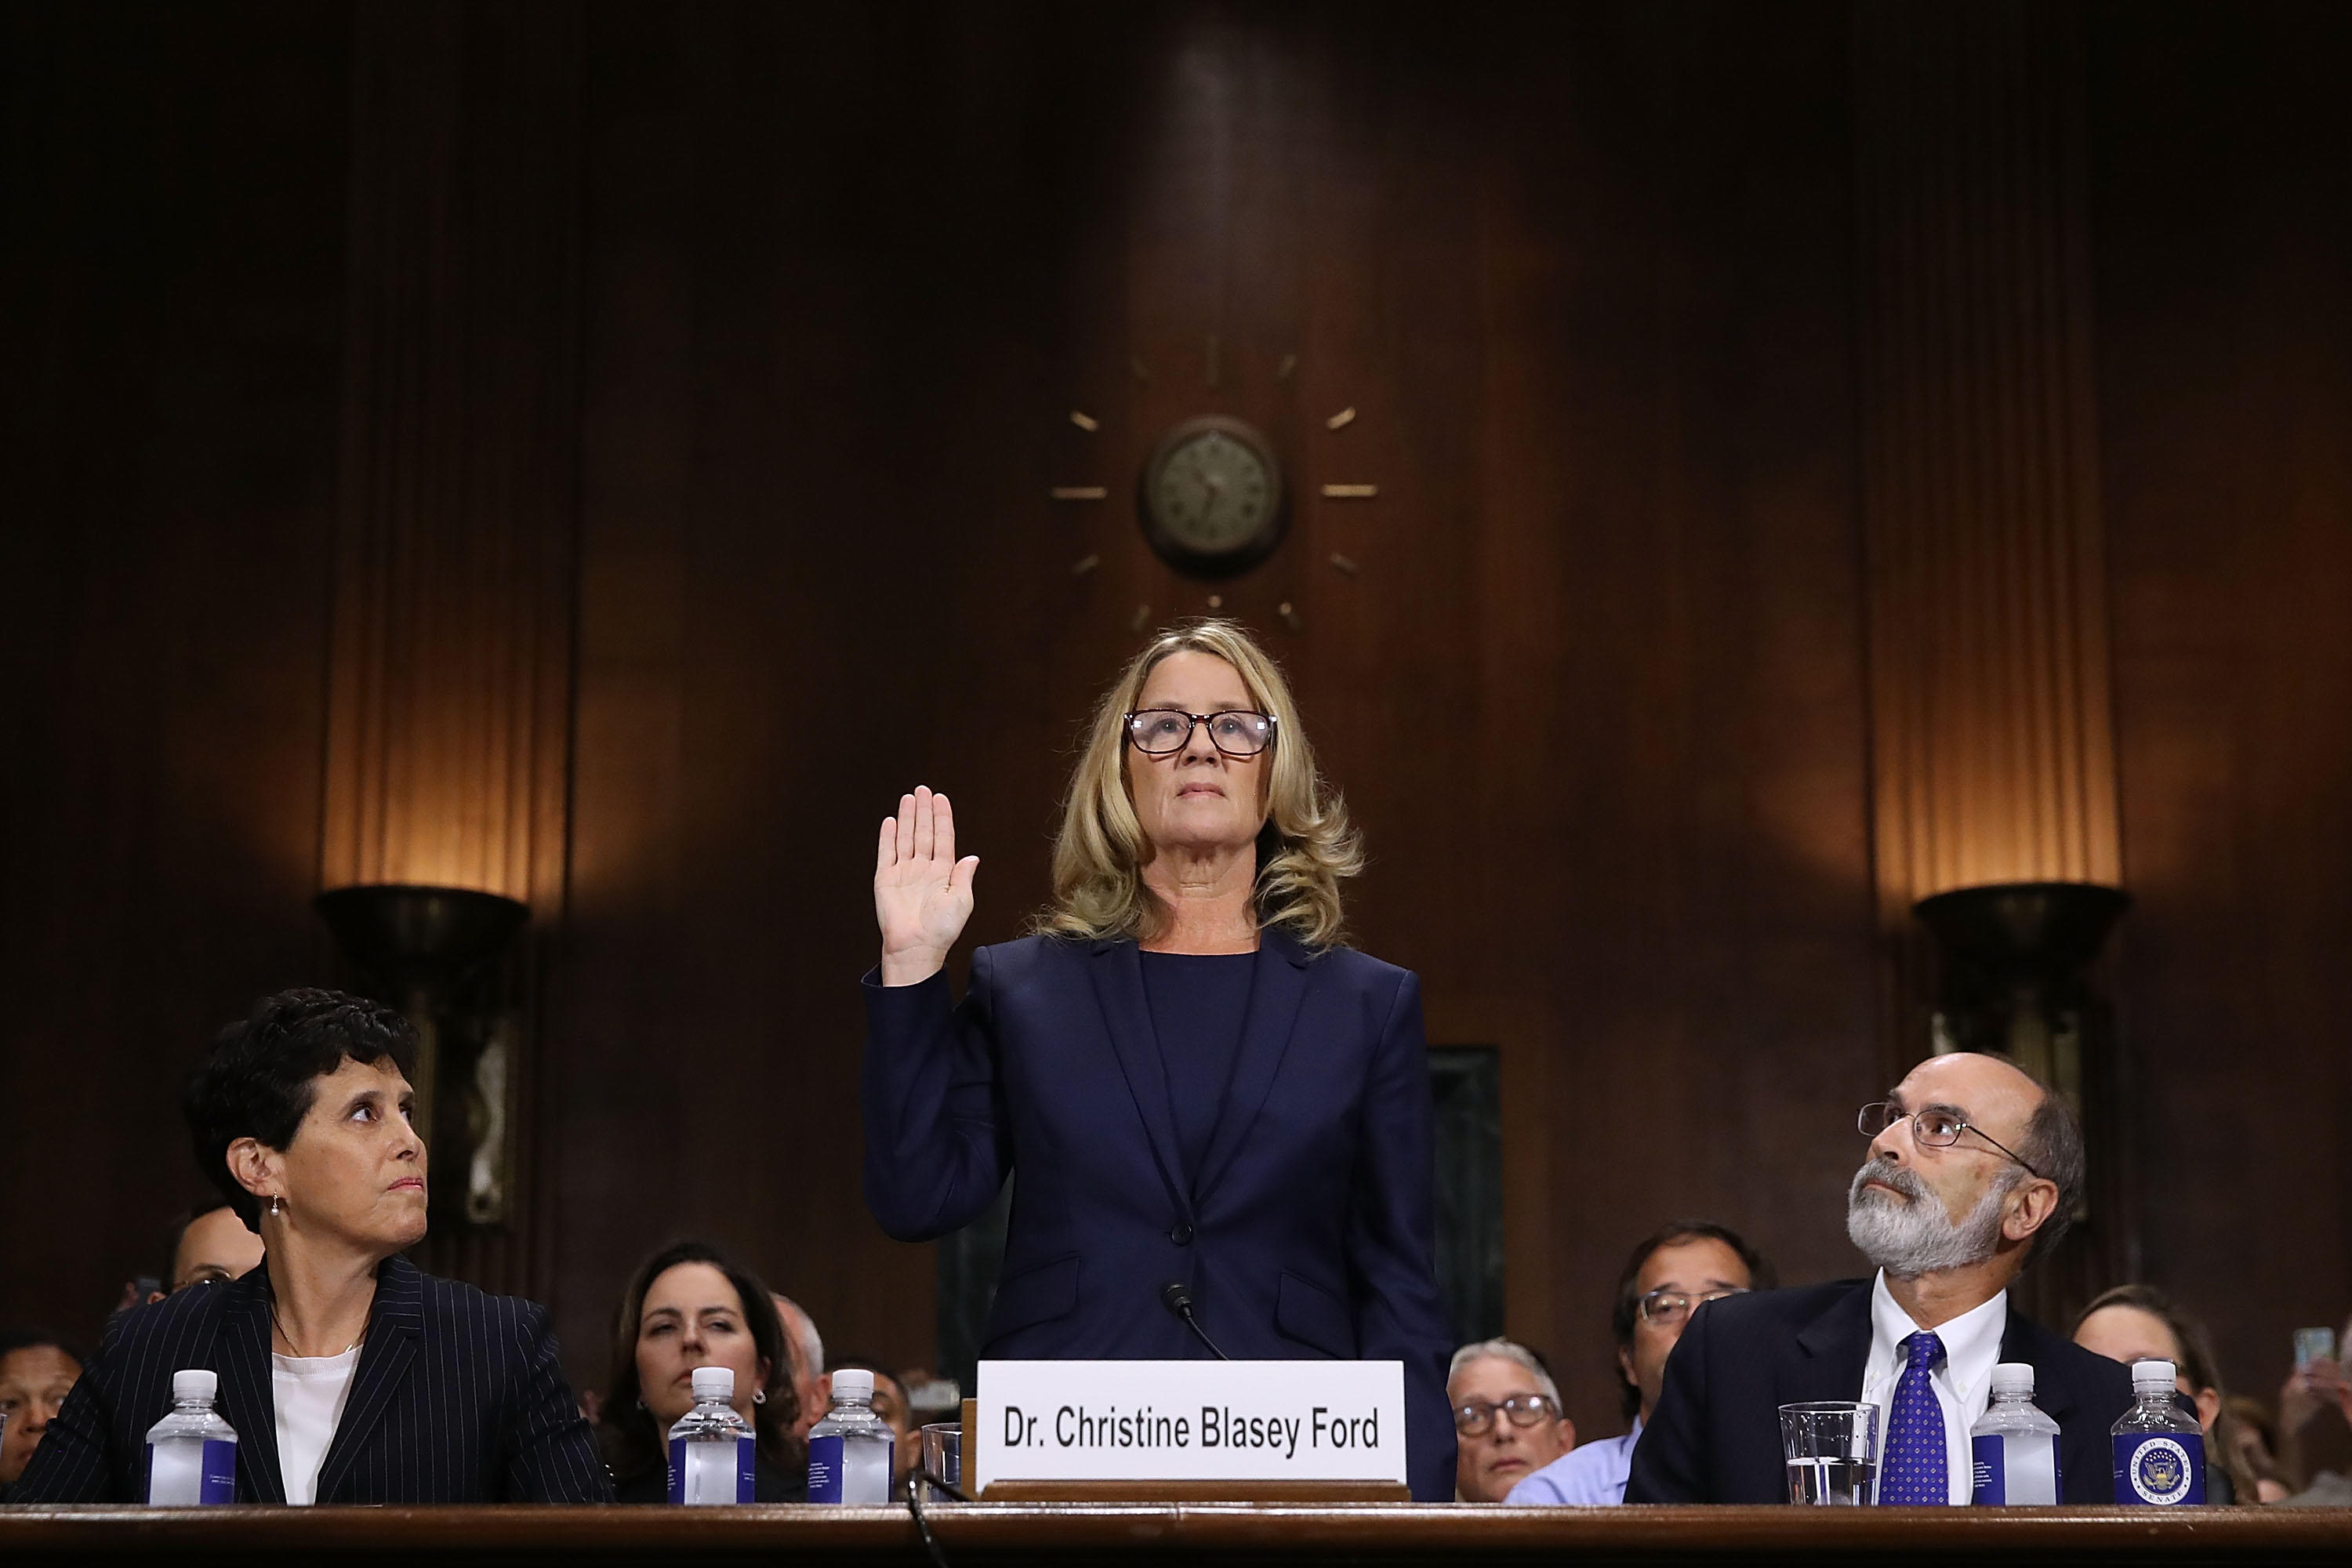 Mpa Testifies For Rate Increase To >> Gofundme Campaigns For Christine Blasey Ford Raise Over 700 000